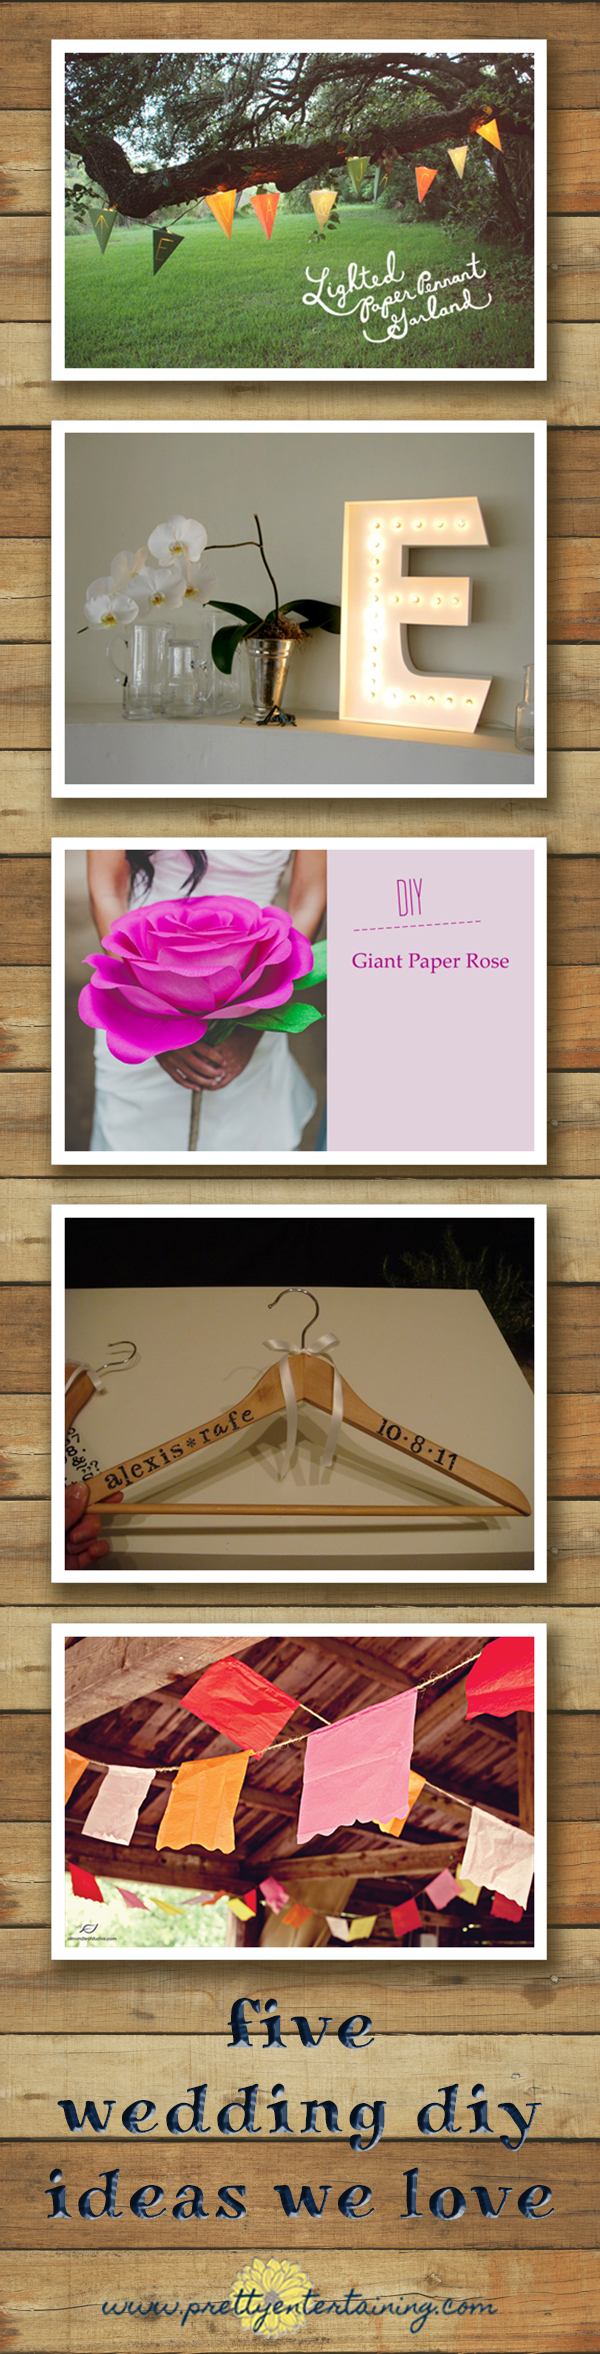 I thought I'd share a few of my favorite wedding DIY project ideas with you. These are things I've seen over the past couple of months online that have caught my eye for a few reasons.